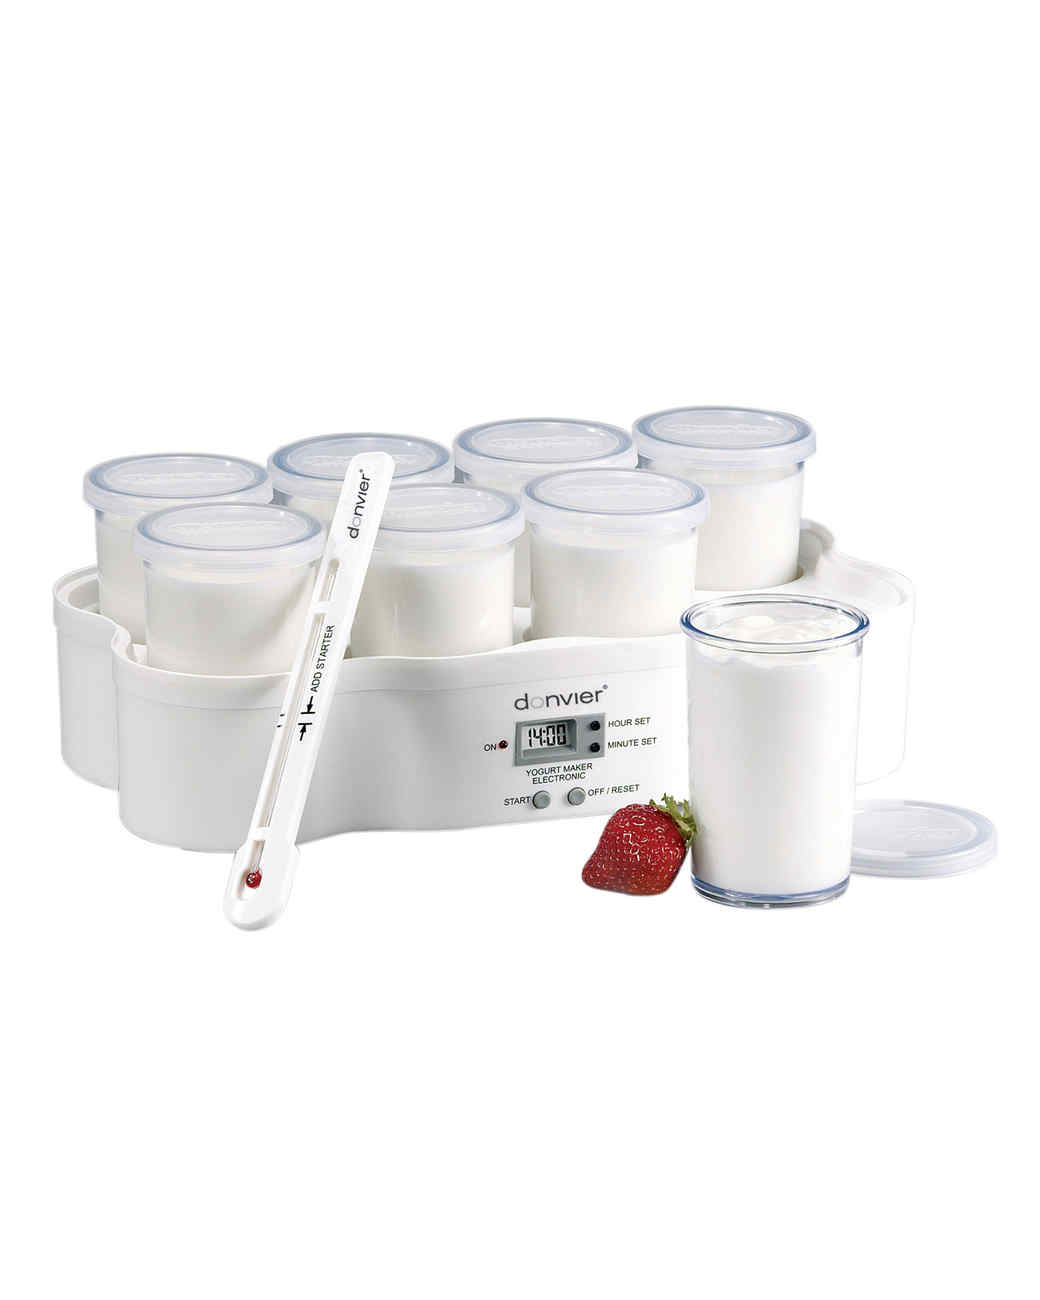 cuisipro-electronic-yogurt-maker.jpg